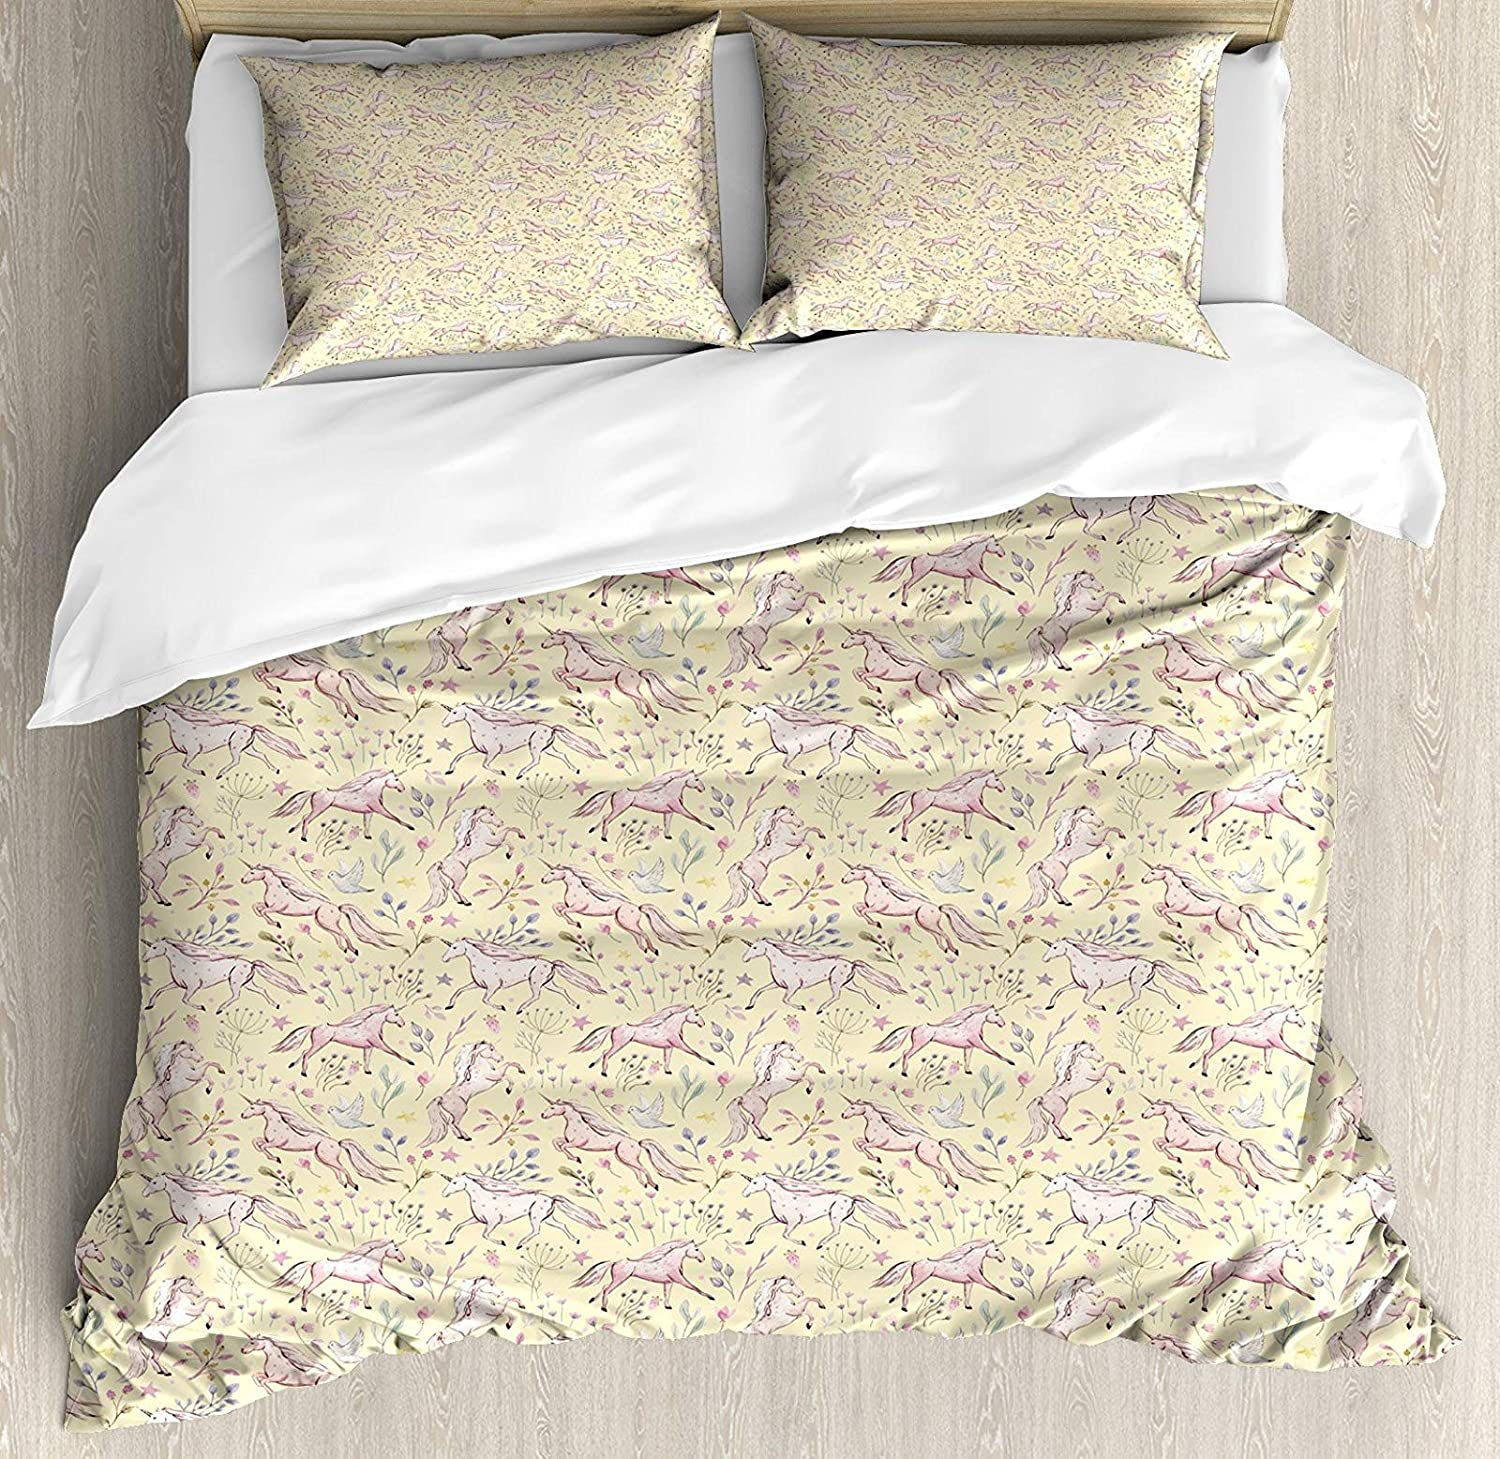 Abstract King Size 4 Pcs Bedding Set, Watercolor Unicorns Pattern with Pale Tones on Pastel Flower and Stars Background All Season Duvet Cover Bed Set, Multicolor